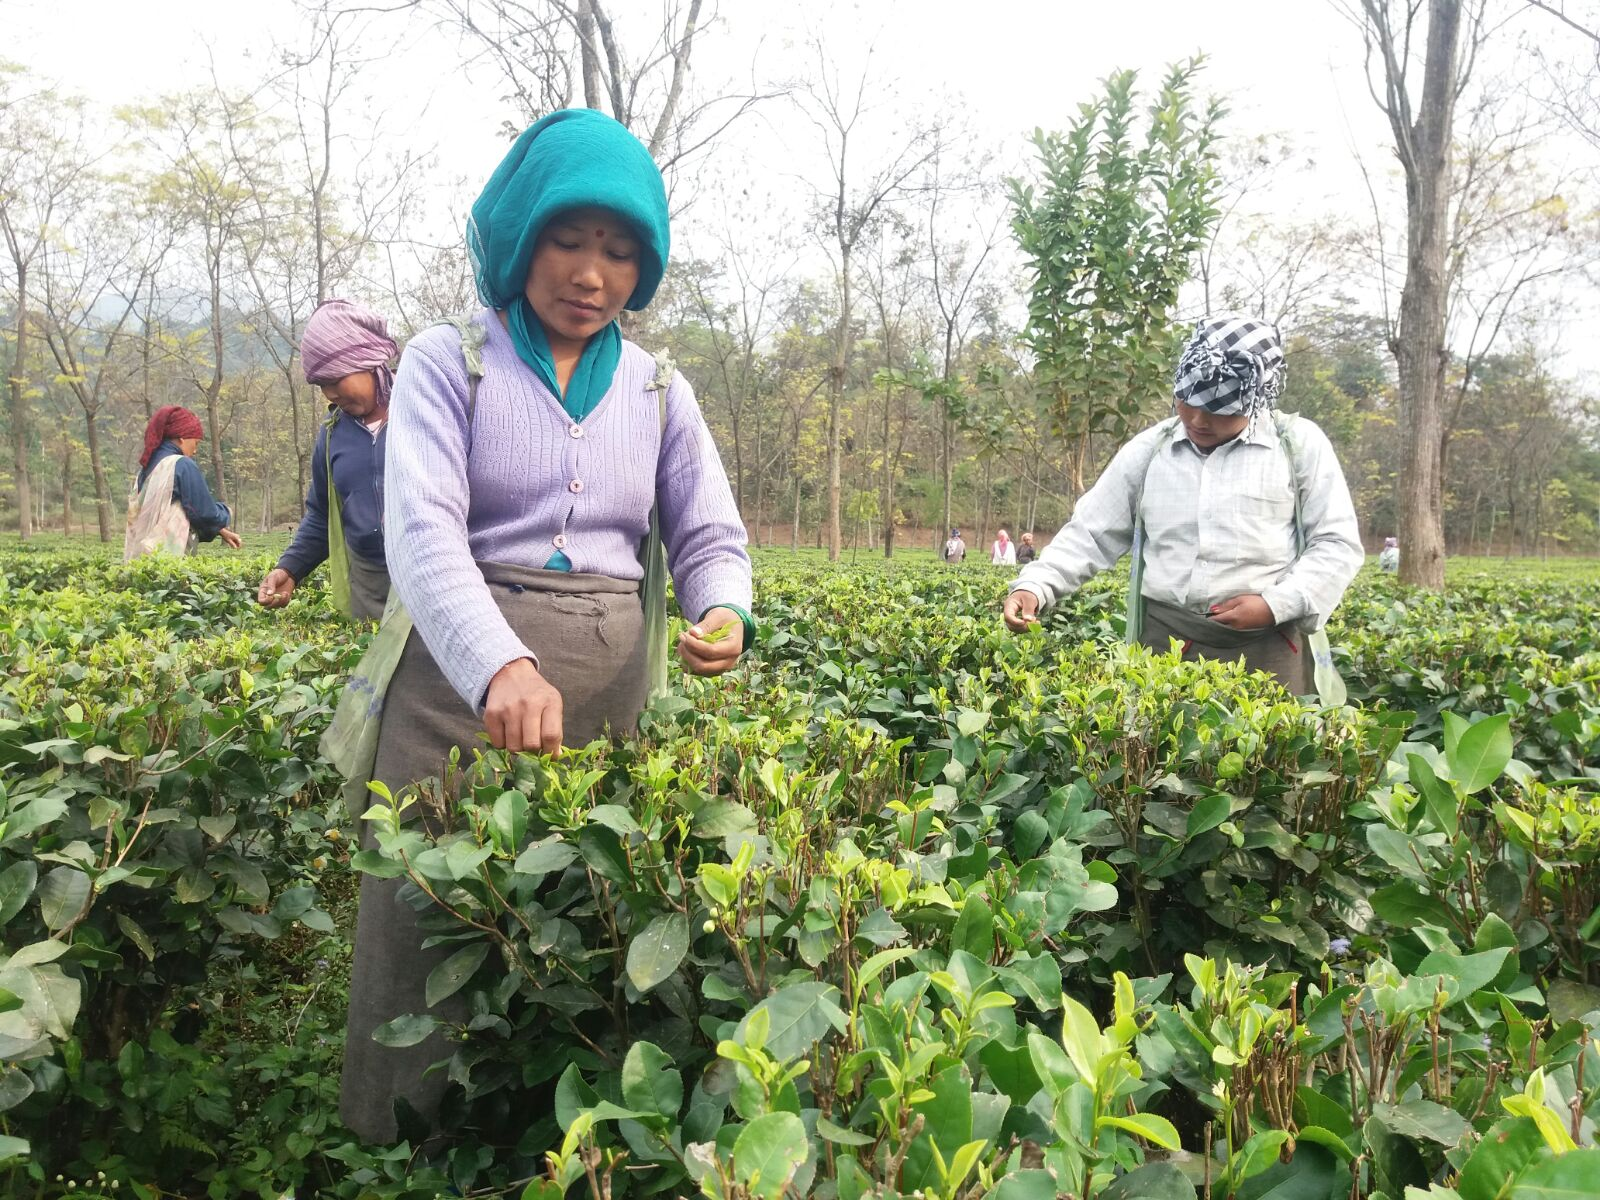 Rohini Tea Estate – The Youngest Tea Estate of Darjeeling